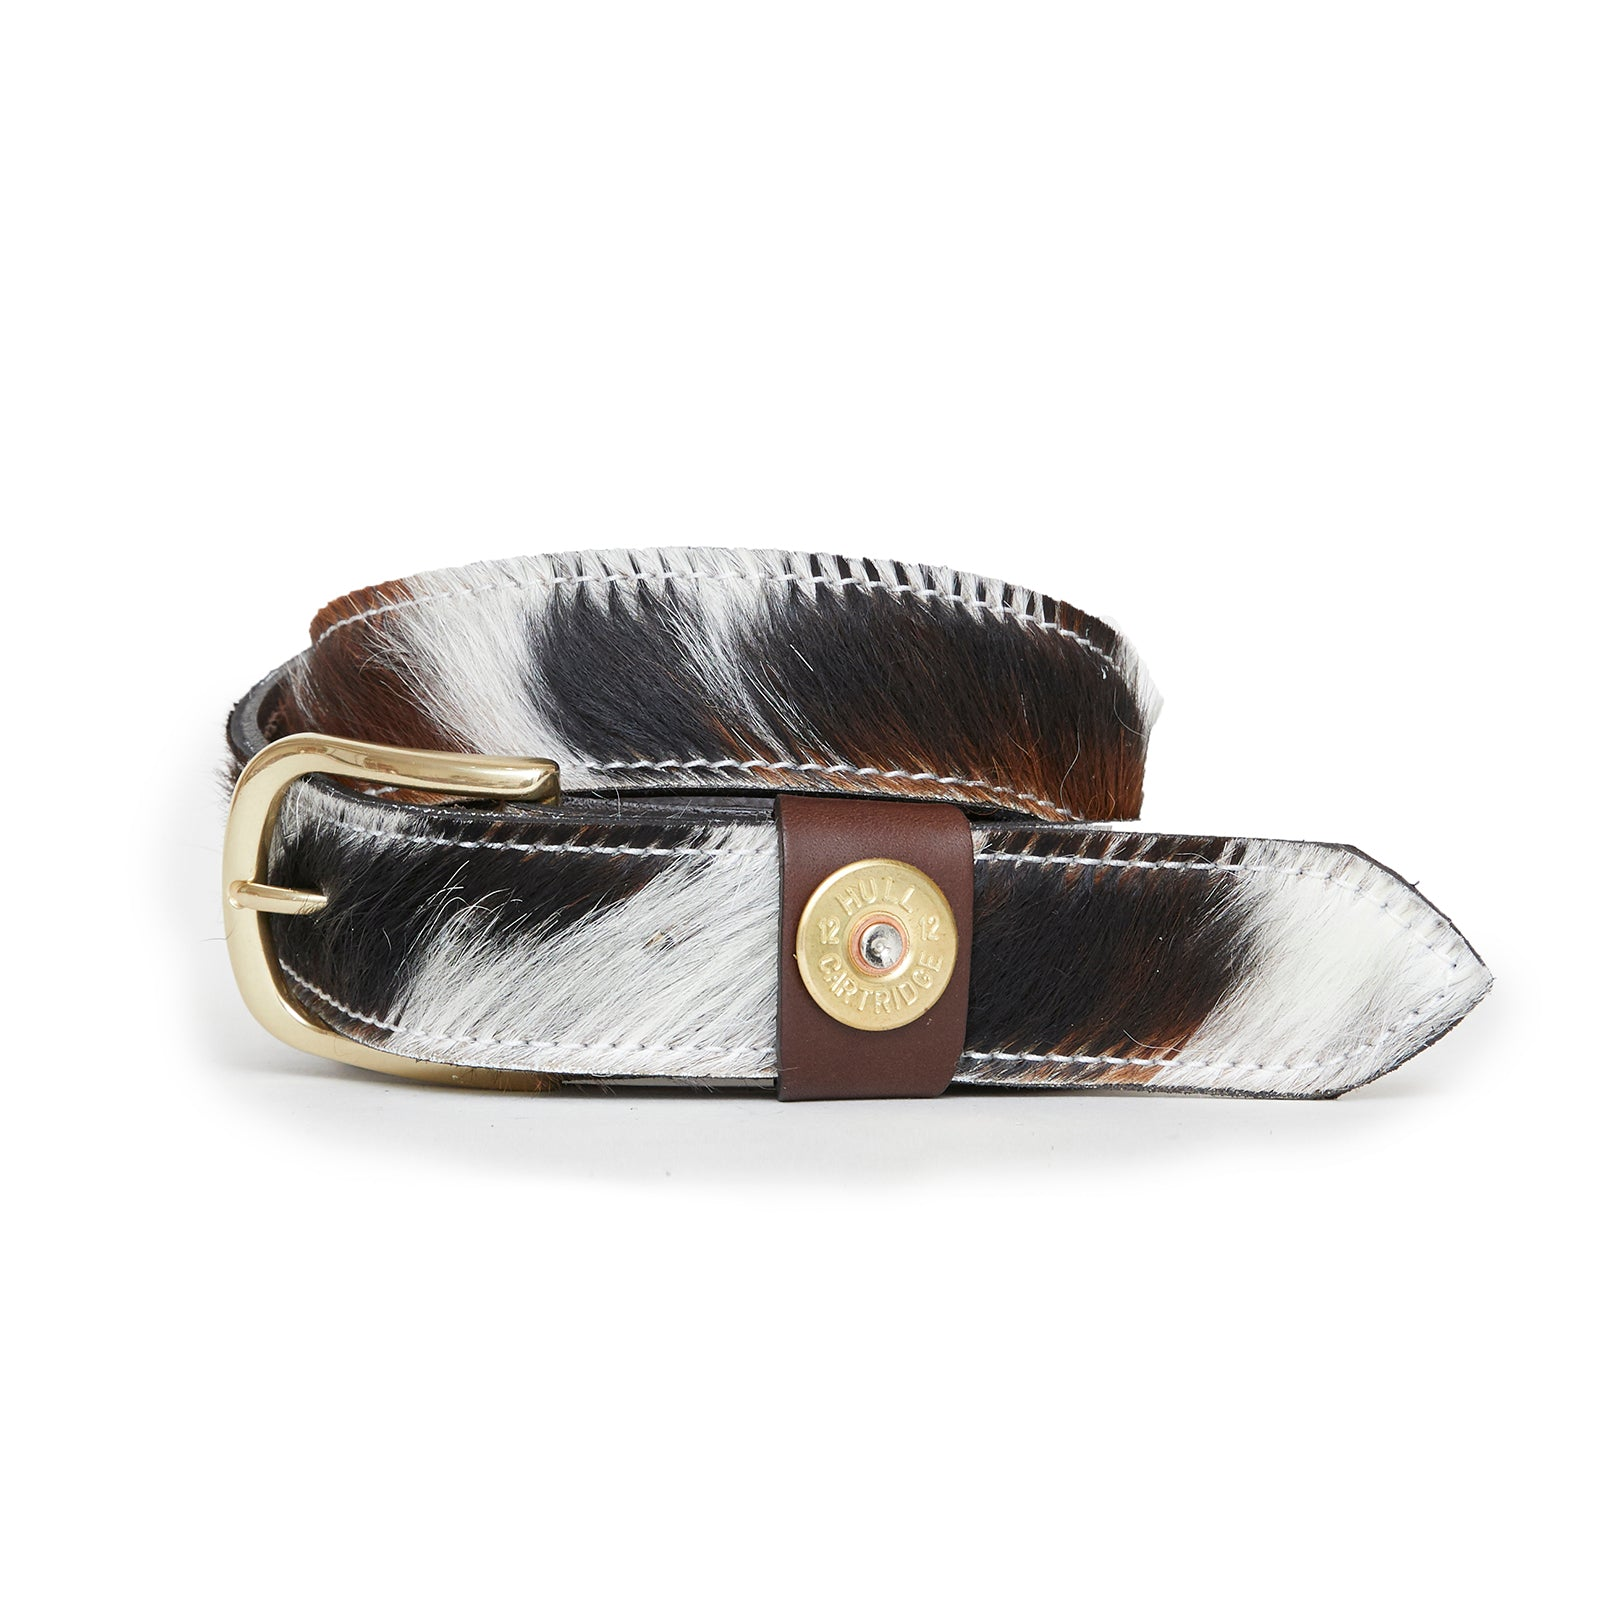 Hicks and Hides Moreton Keeper Belt for Ladies in Cowhide